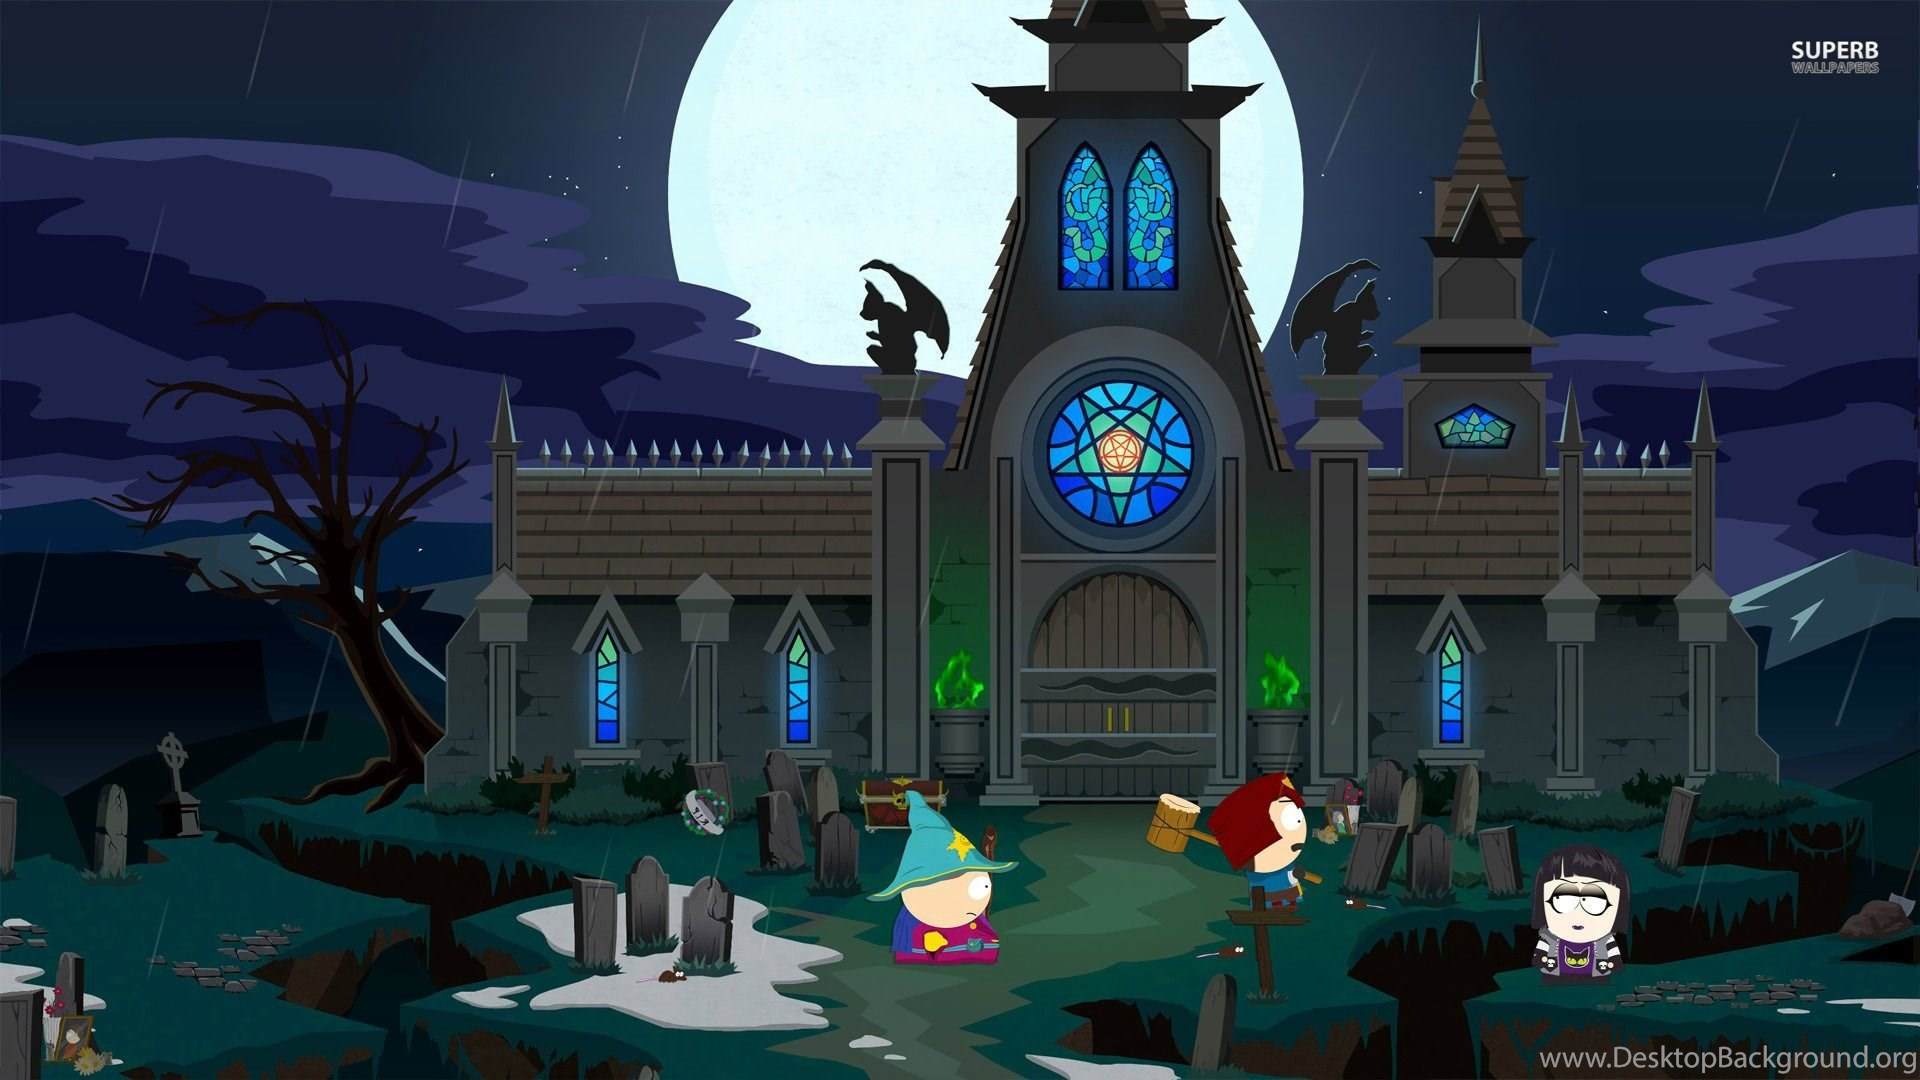 South Park The Stick Of Truth Wallpapers Game Wallpapers Desktop